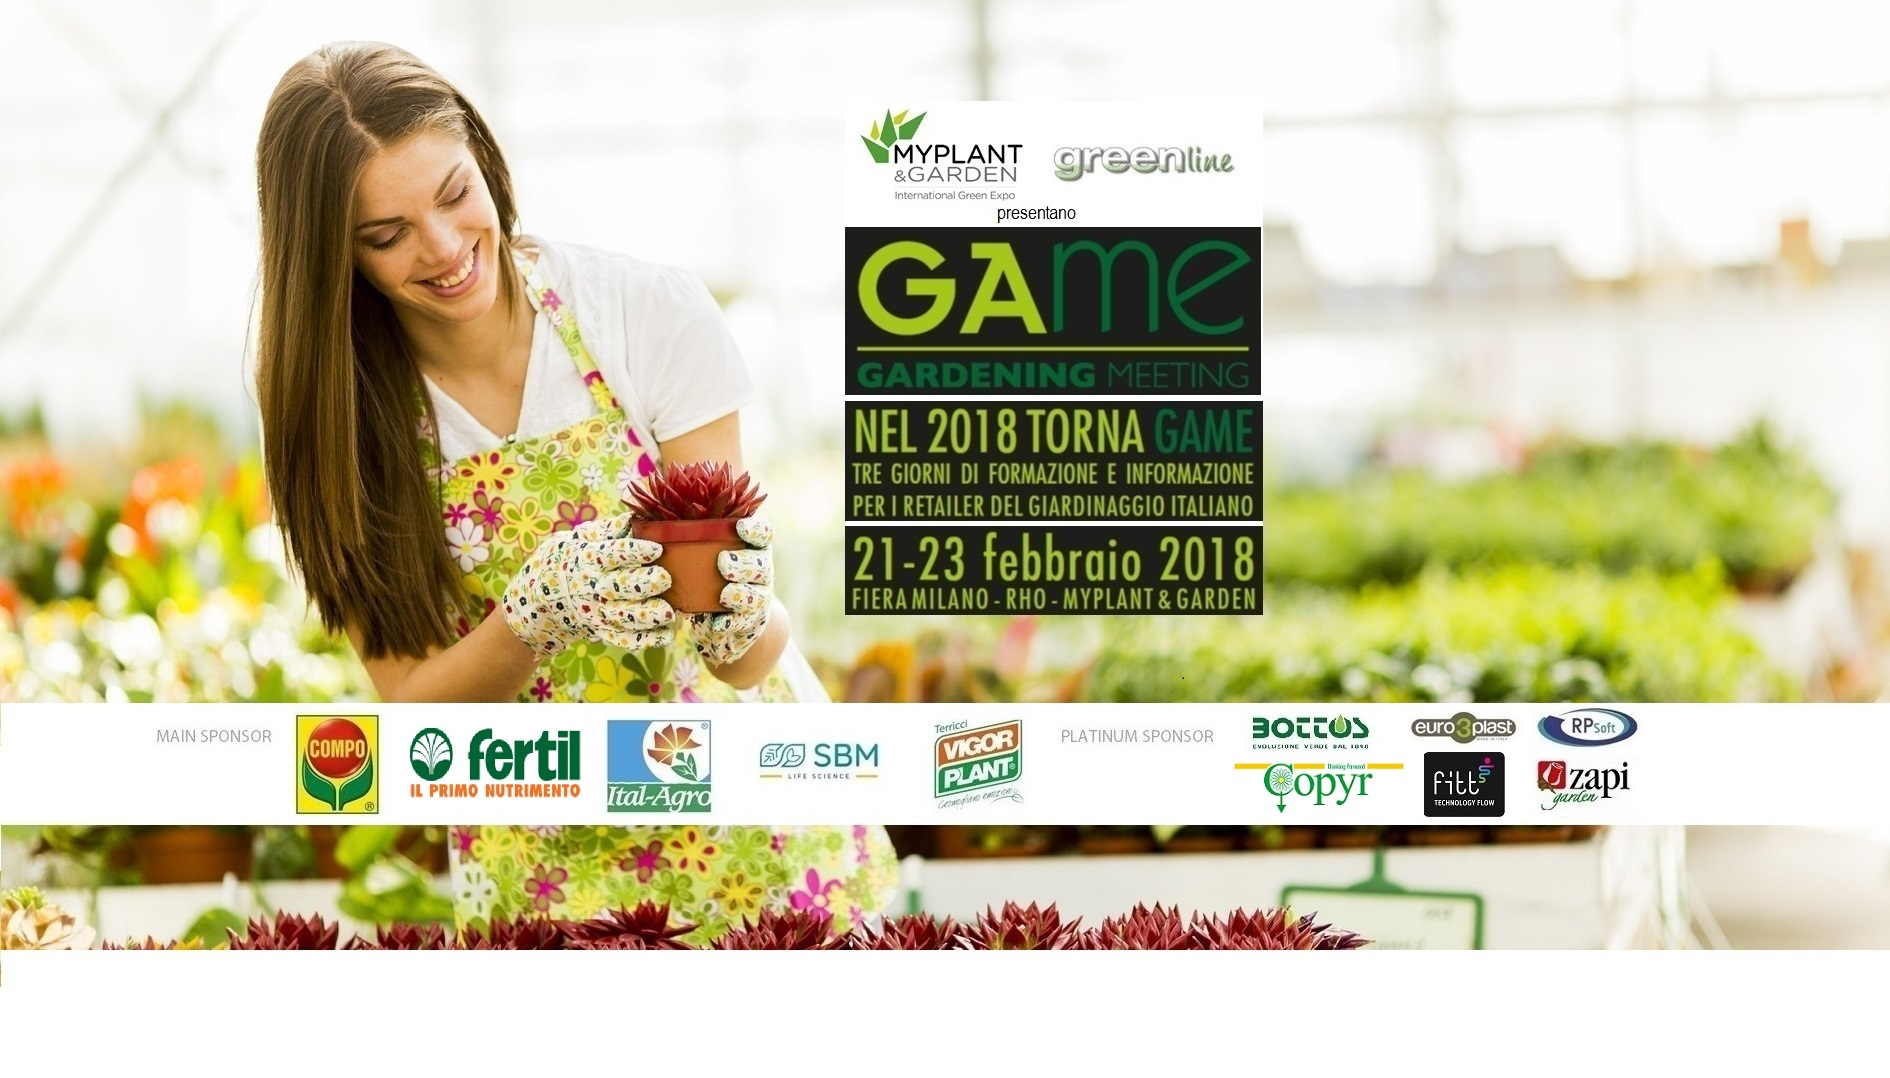 GAME-GARDENING-MEETING-MILANO-MYPLANT-2018